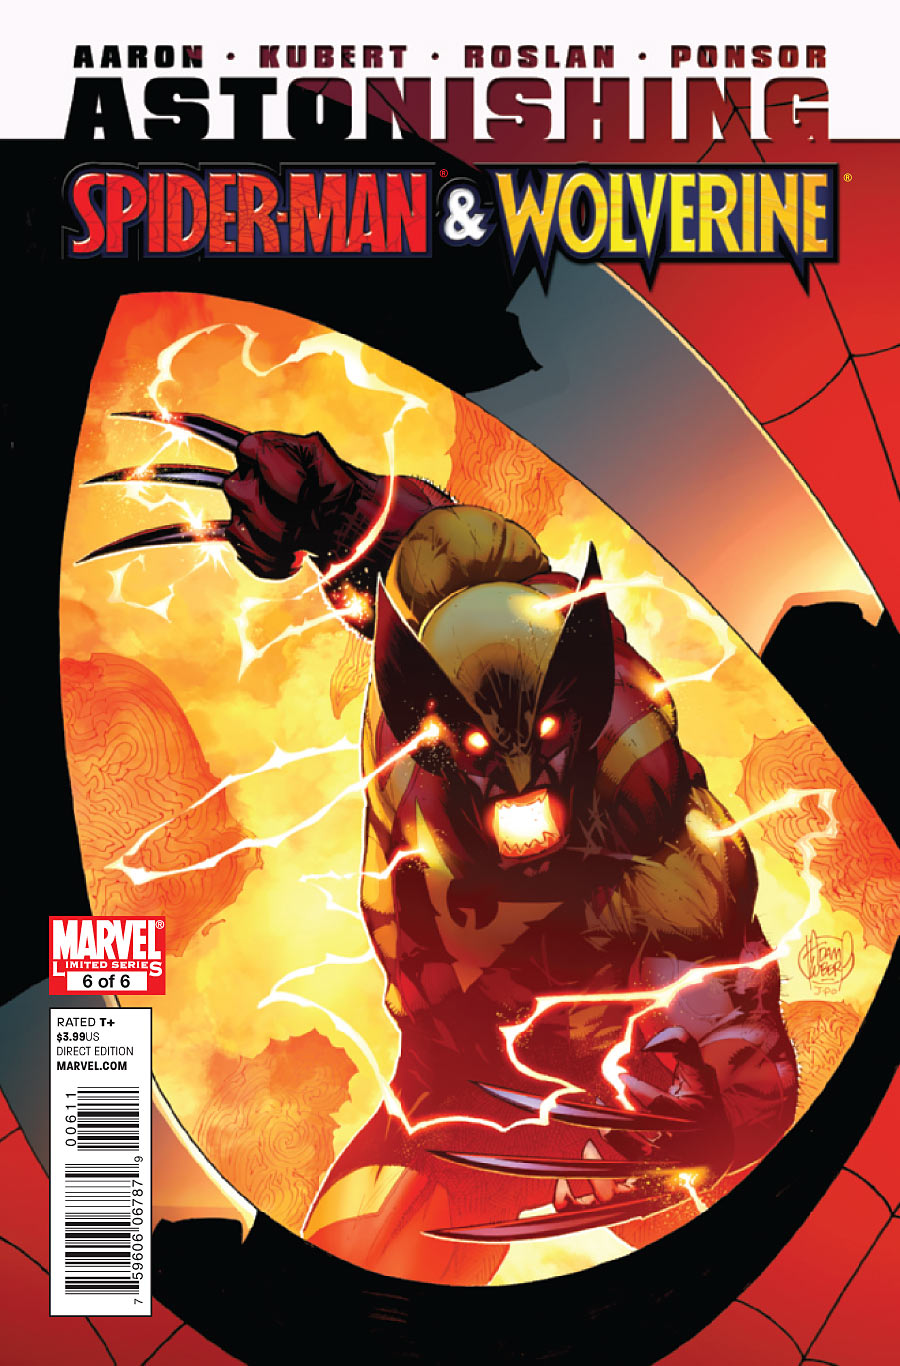 Astonishing Spider-Man & Wolverine Vol 1 6